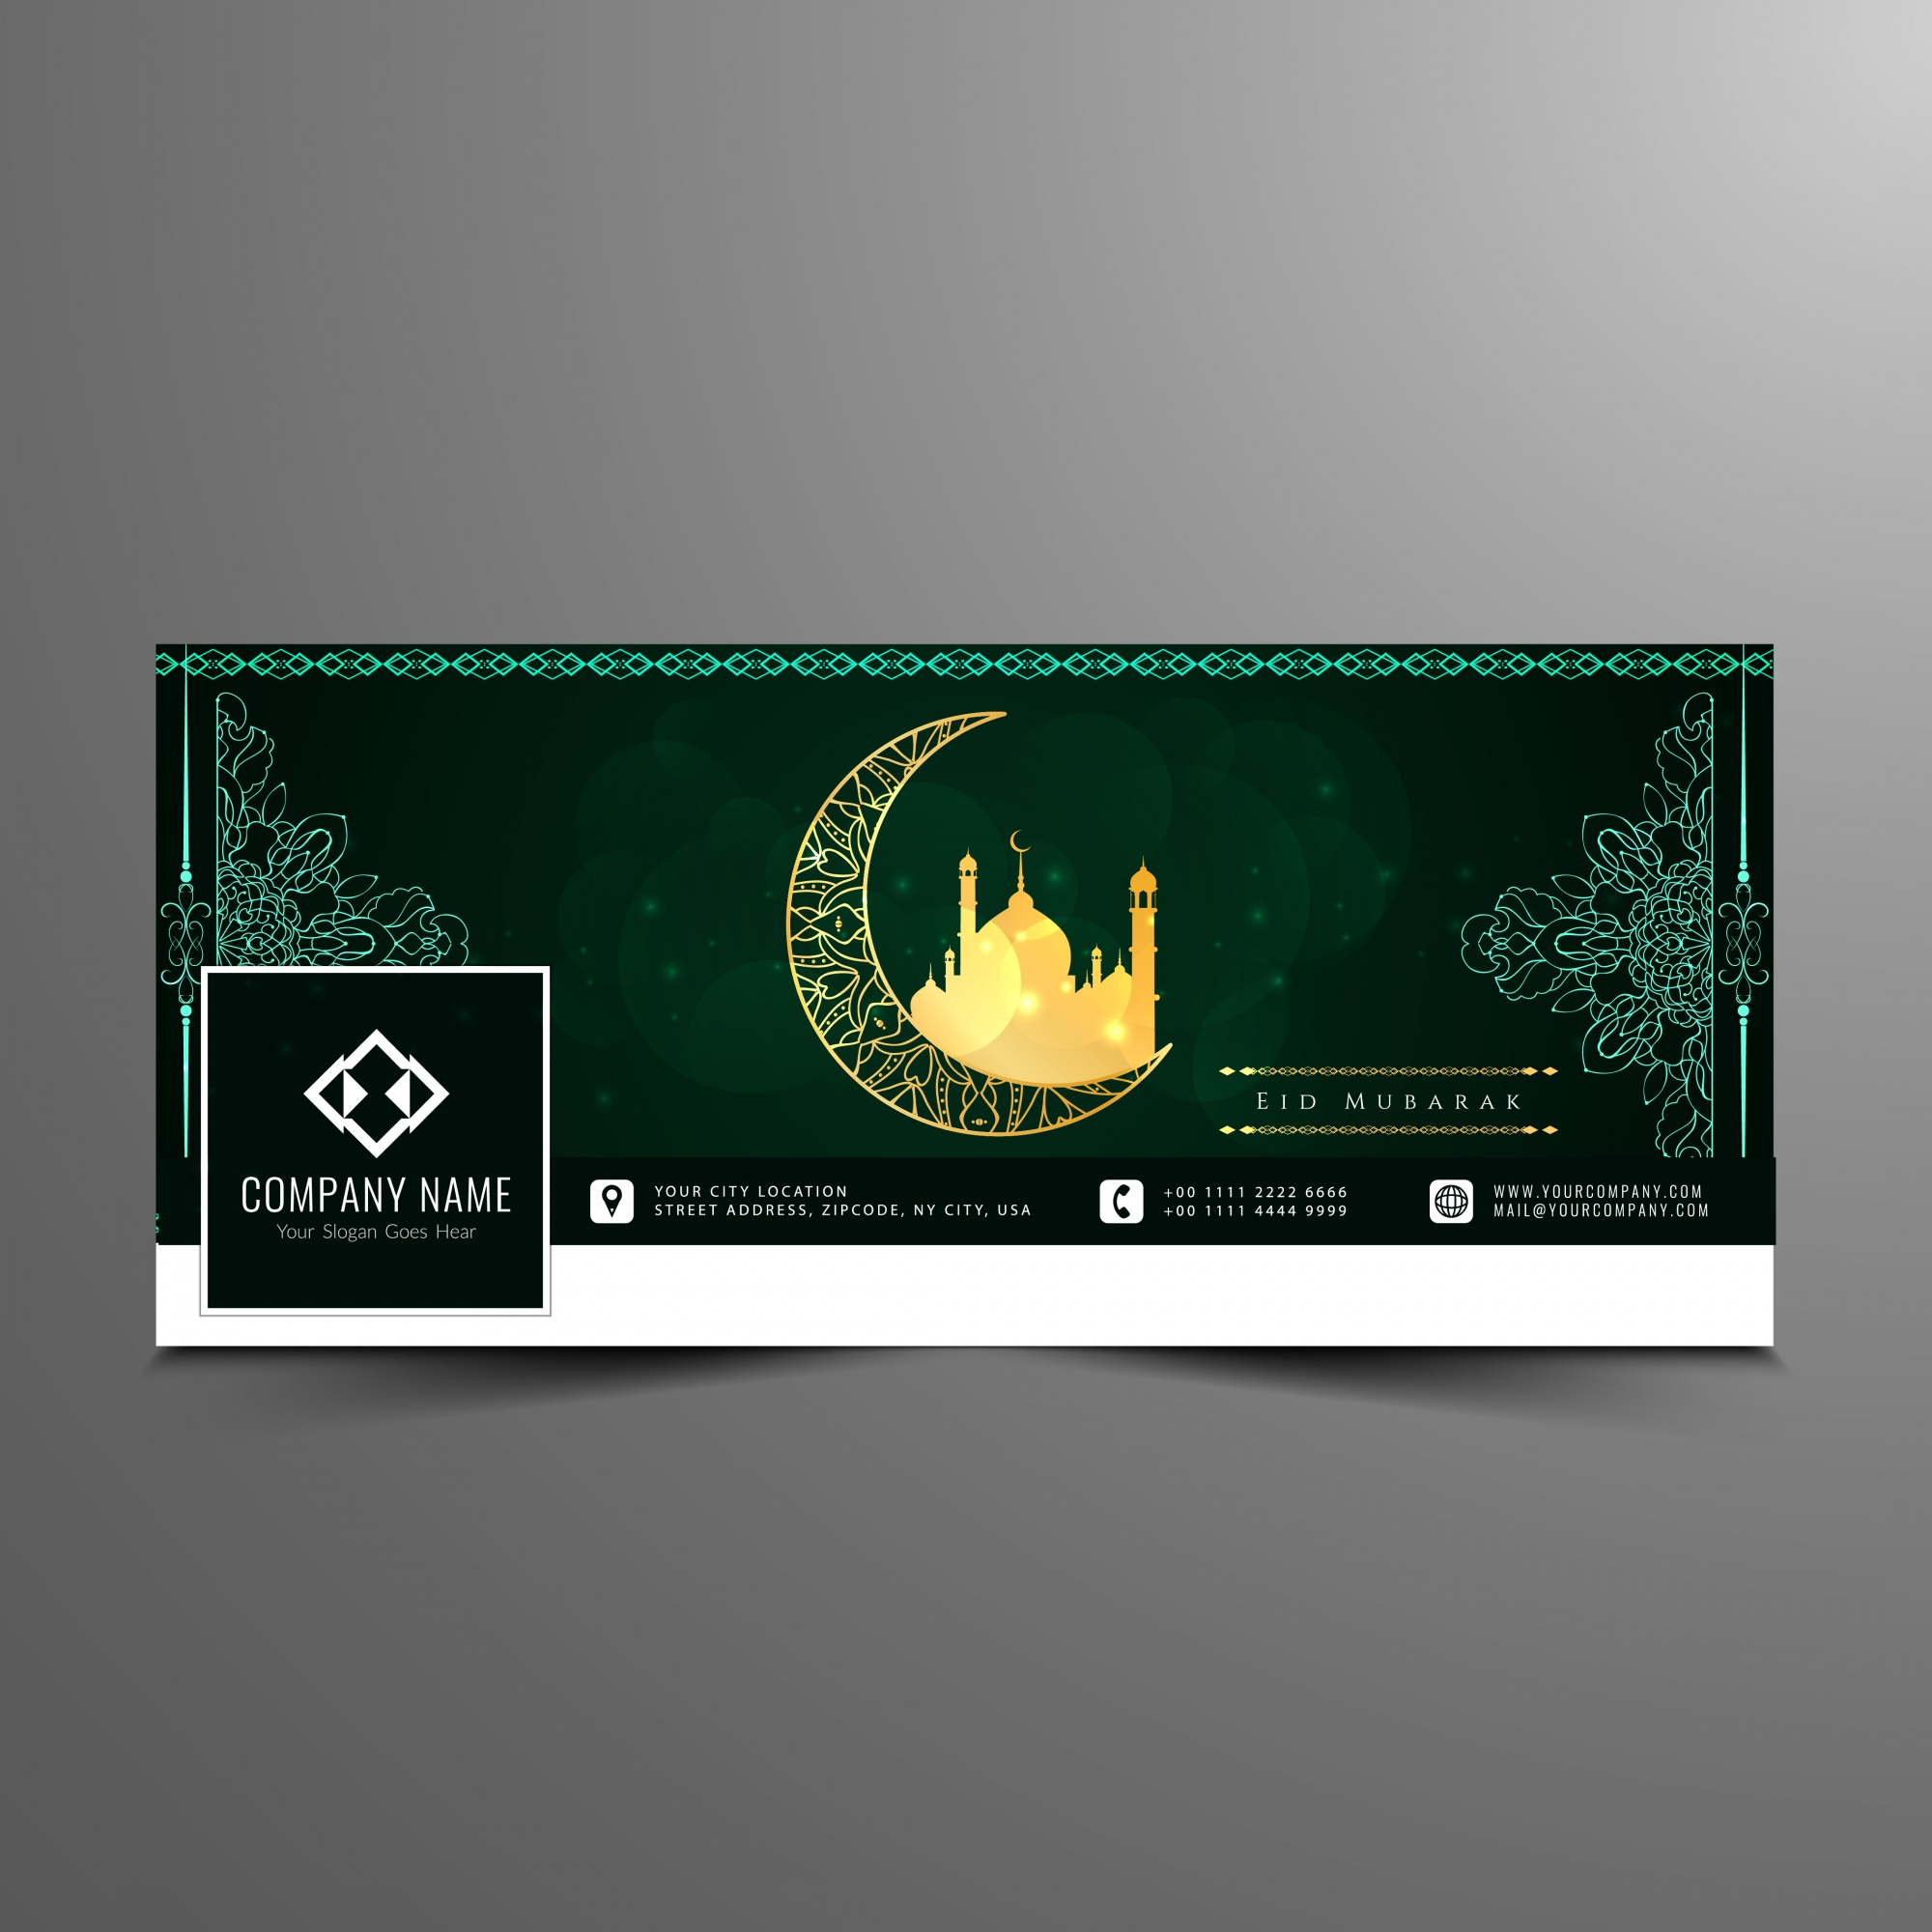 Dark green eid mubarak design for facebook timeline